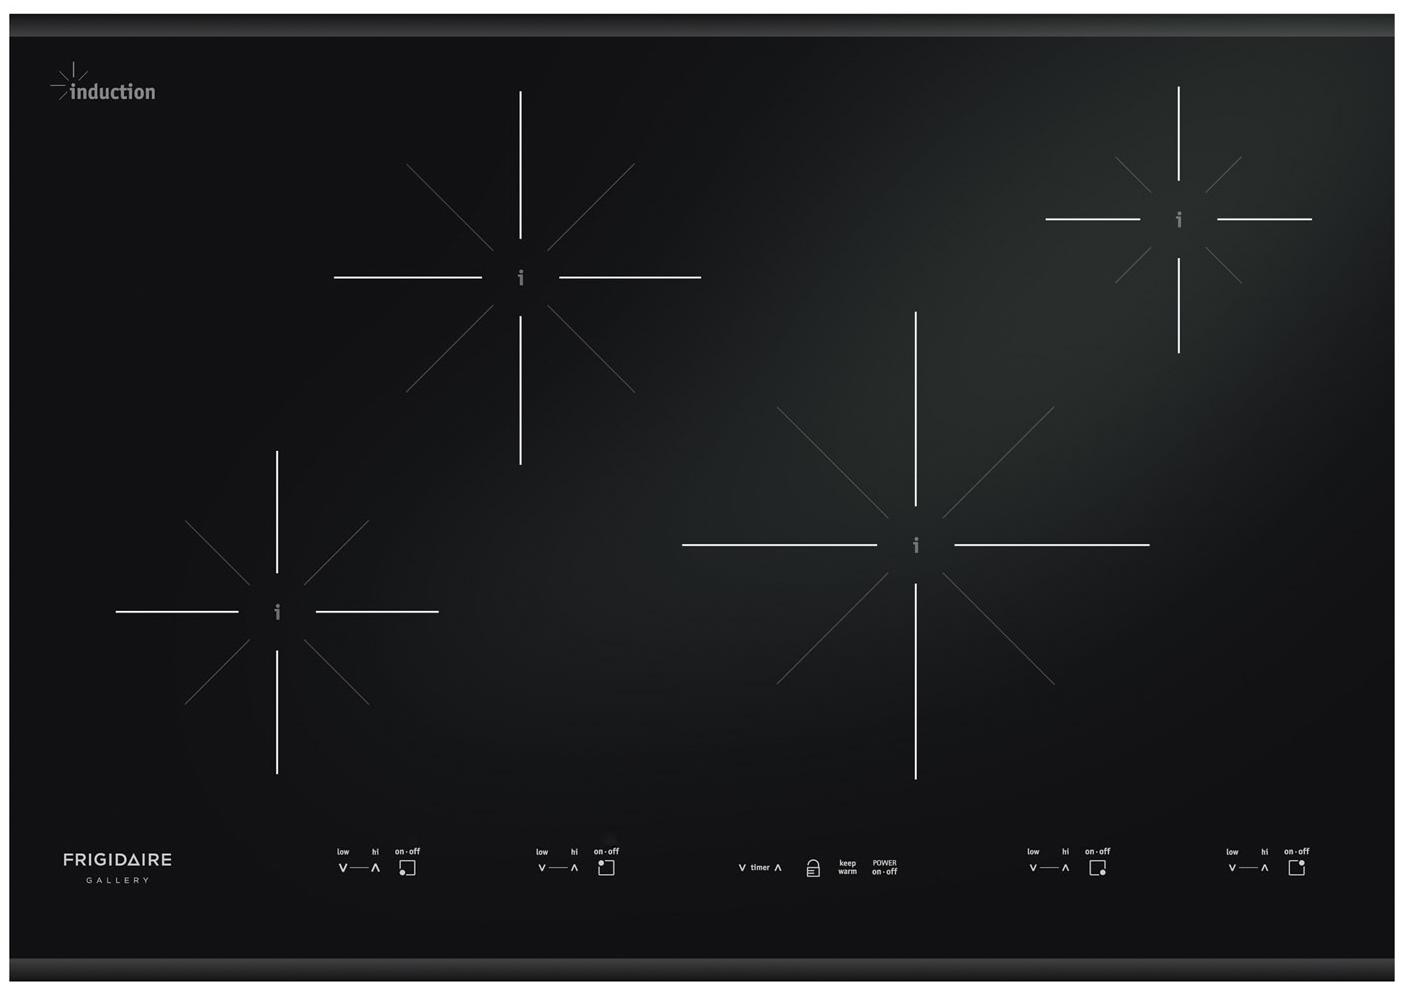 "Frigidaire Frigidaire Gallery Electric Cooktops 30"" Built-In Induction Cooktop - Item Number: FGIC3067MB"